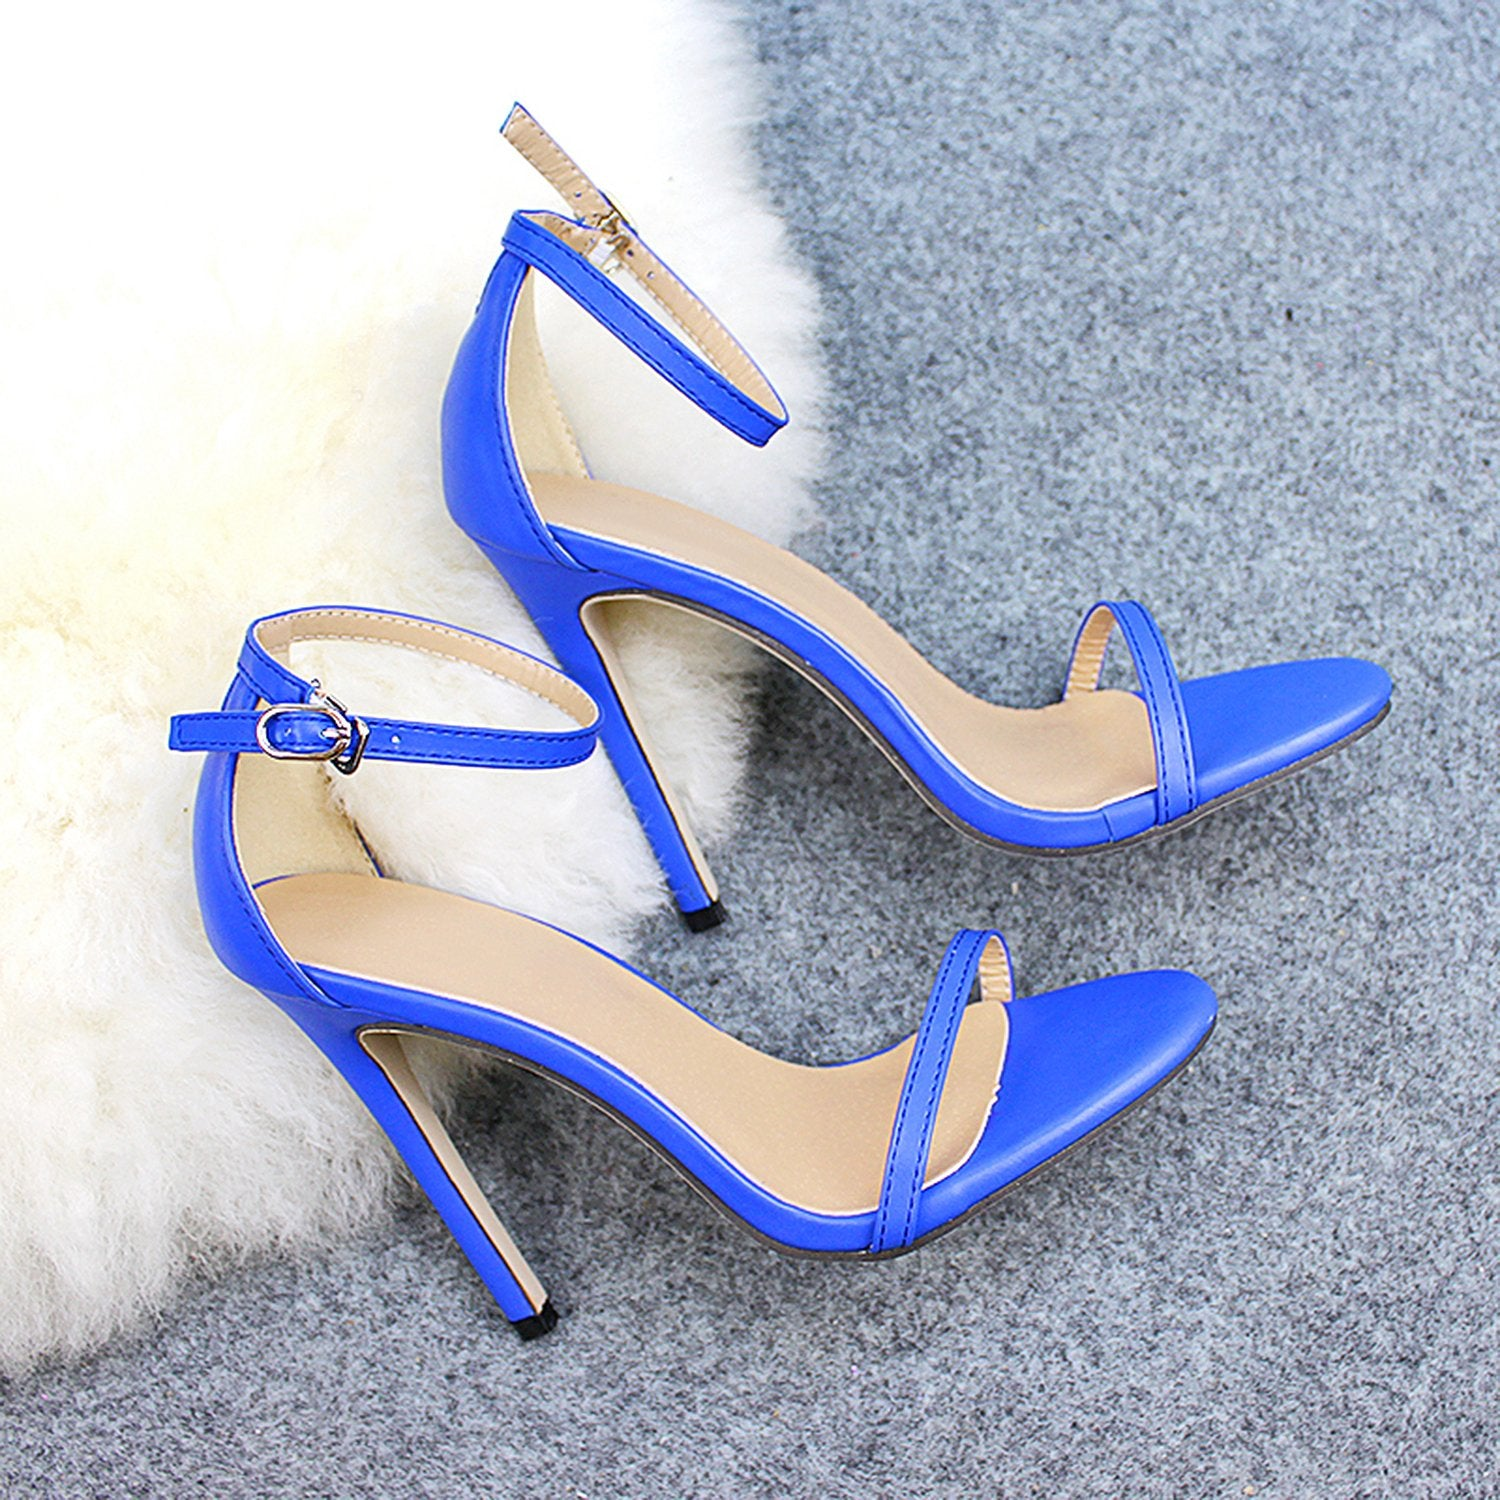 Peep toe Buckle Trap Stiletto High Heels Sandals